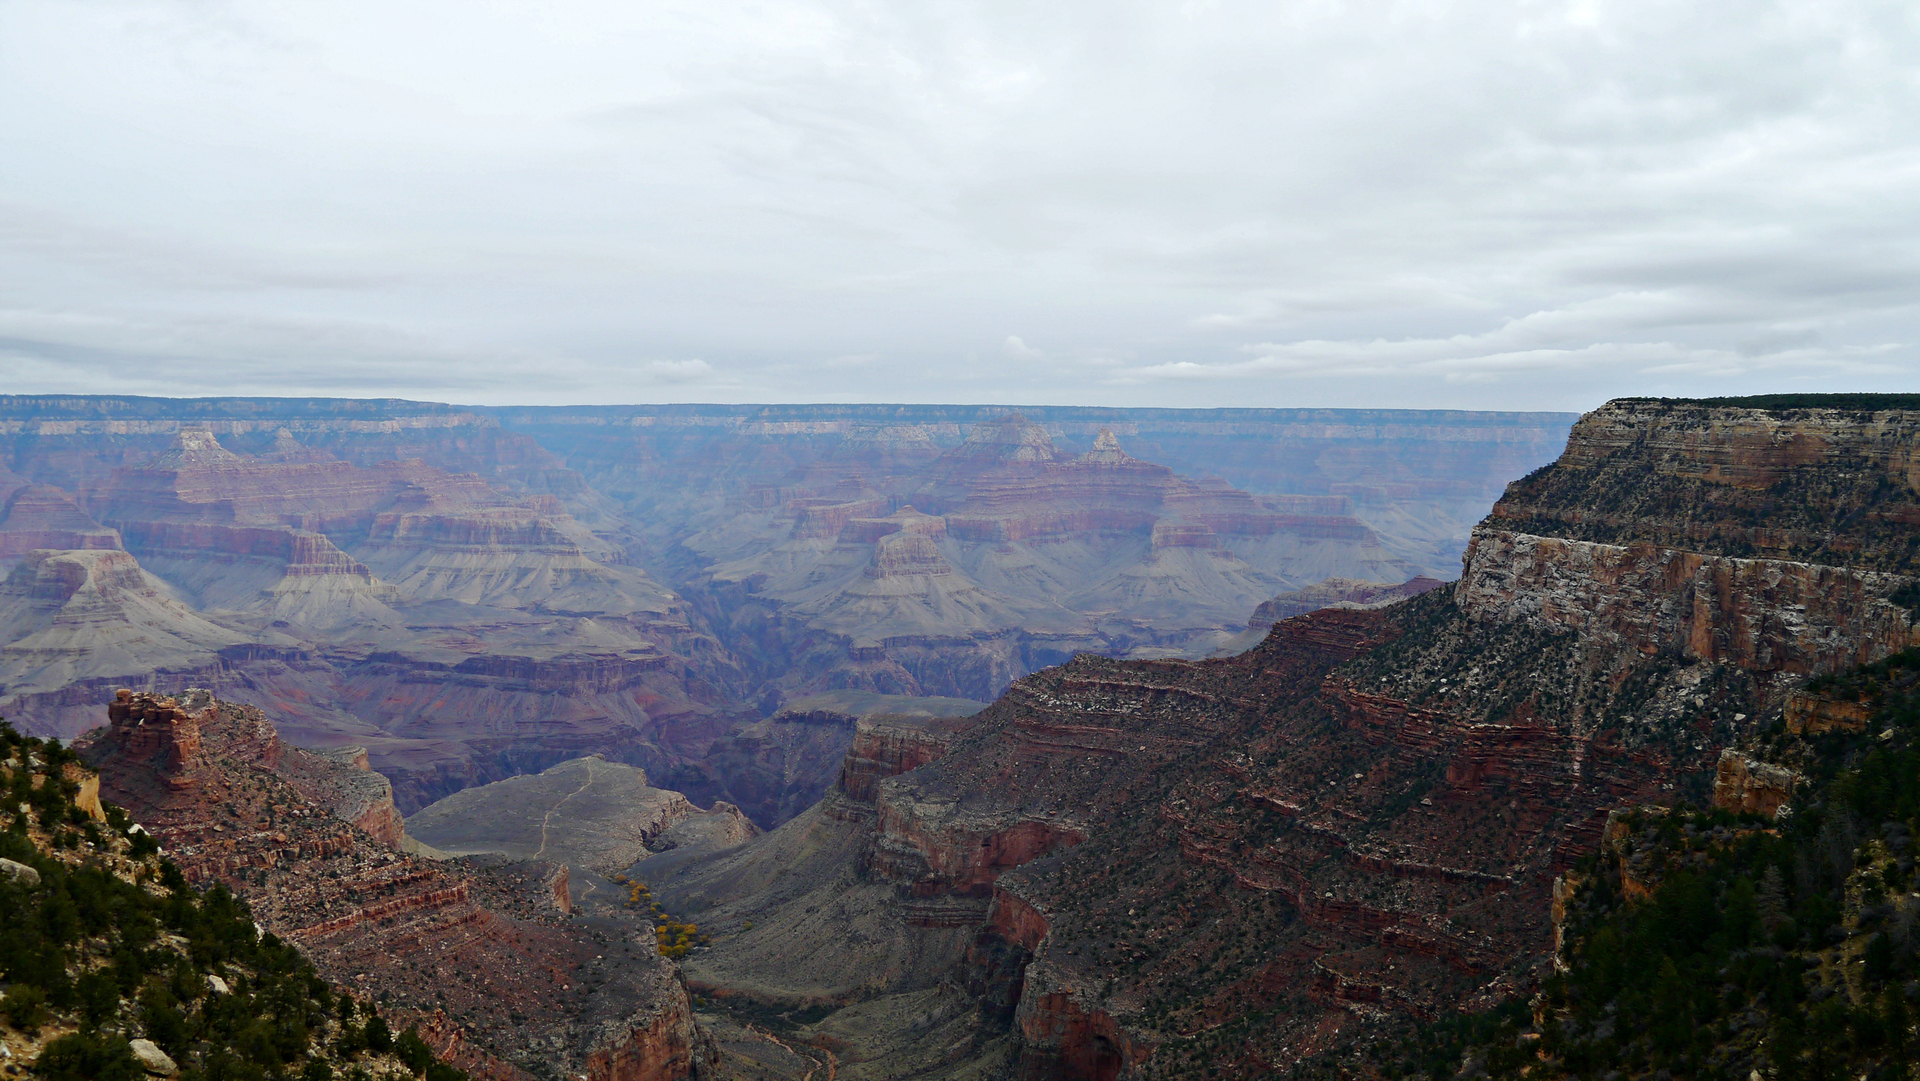 Grand Canyon, Arizona. Dec. 2014